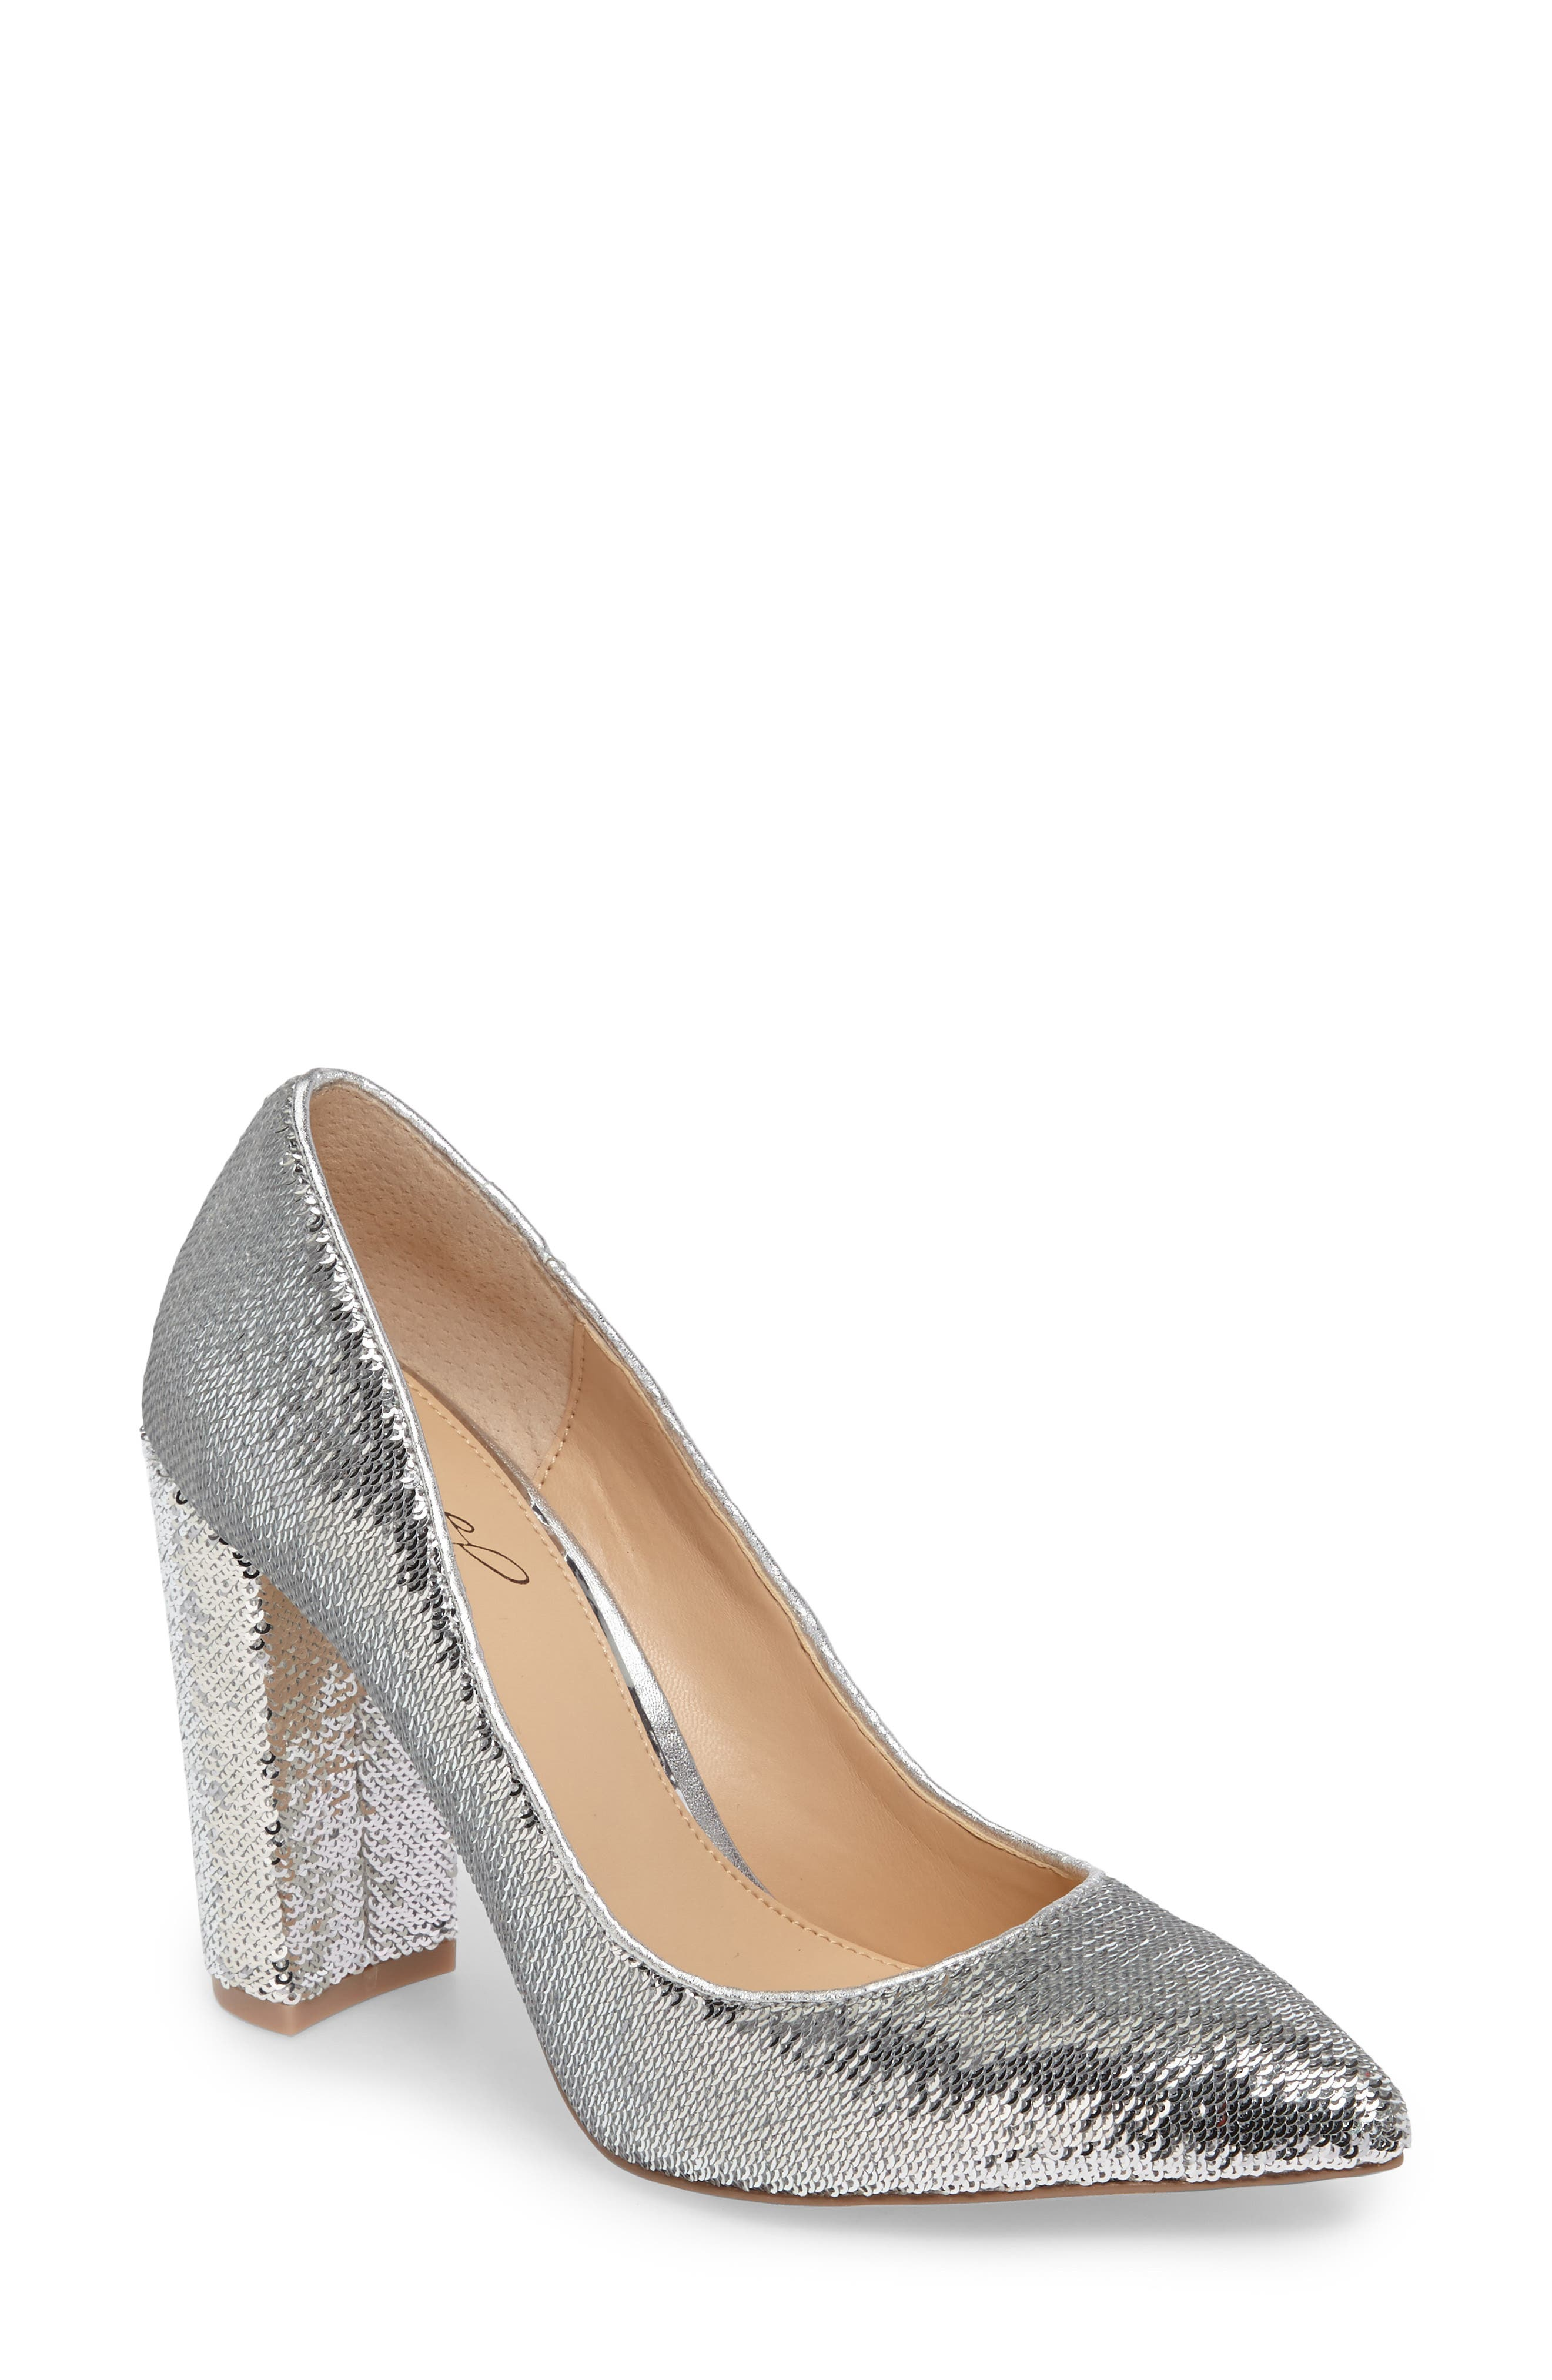 Luxury Pointy Toe Pump,                         Main,                         color, Silver Leather